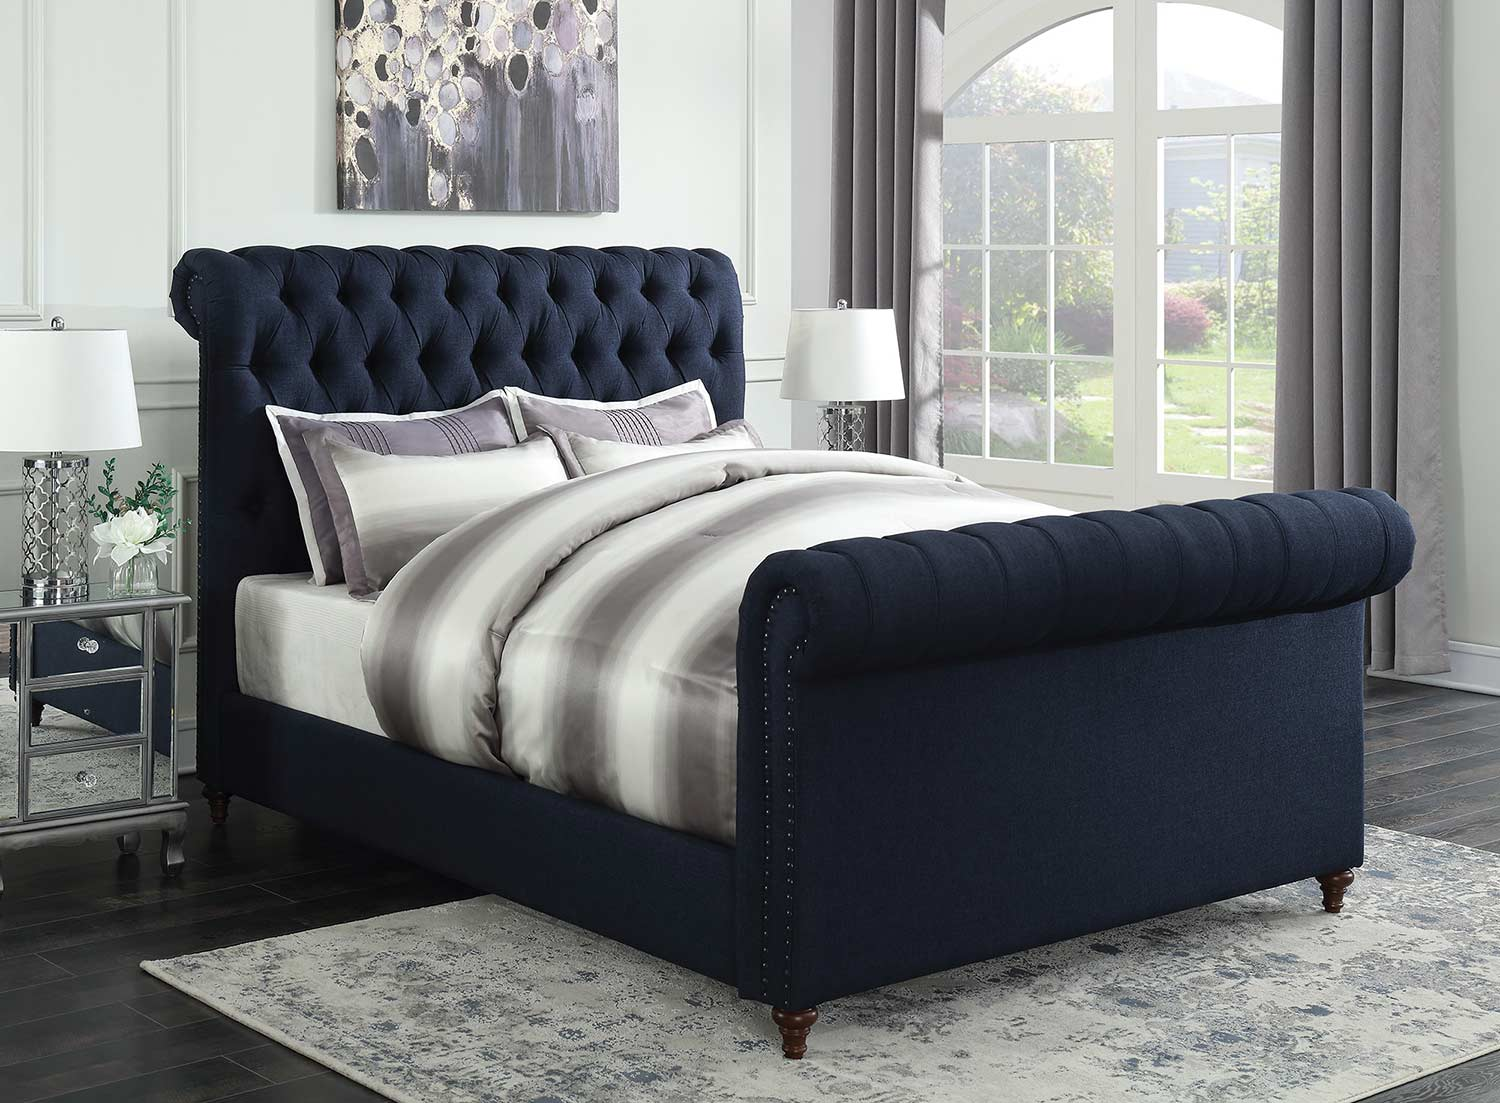 Coaster Gresham Bed - Navy Blue